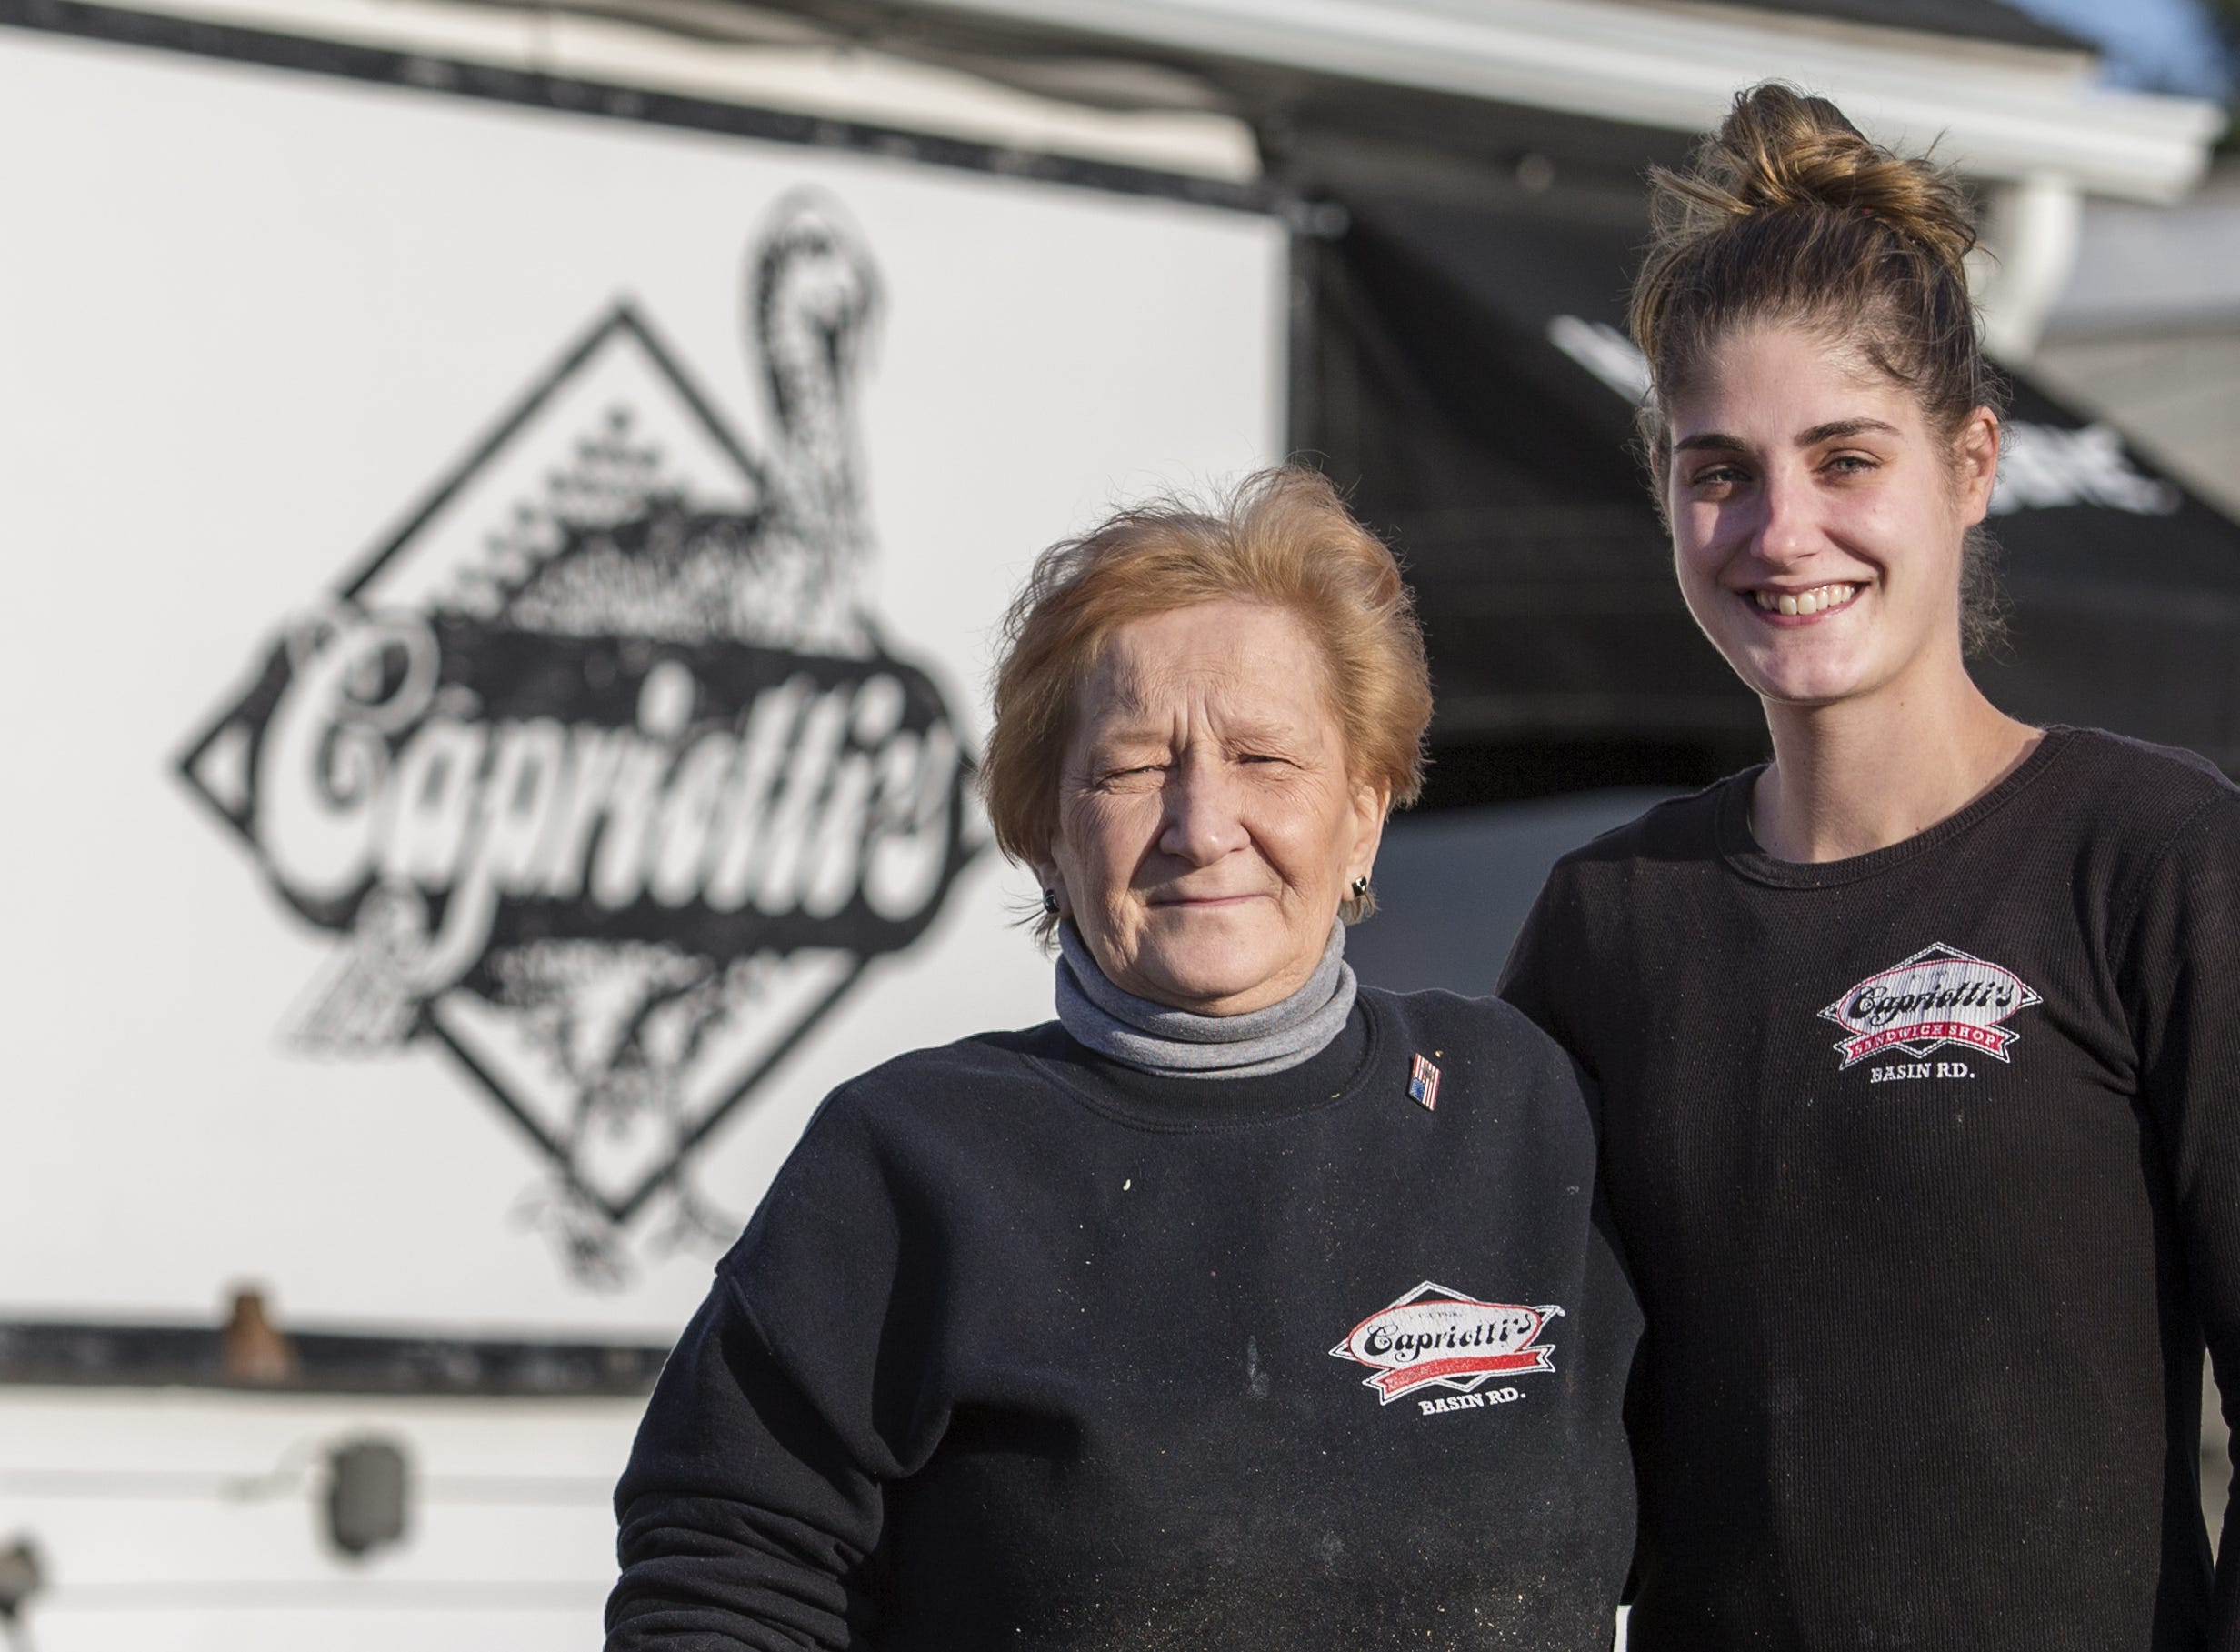 Margaret Smith (left) and Traci Williamson pose for a portrait outside Capriotti's along Basin Road in New Castle in 2016.